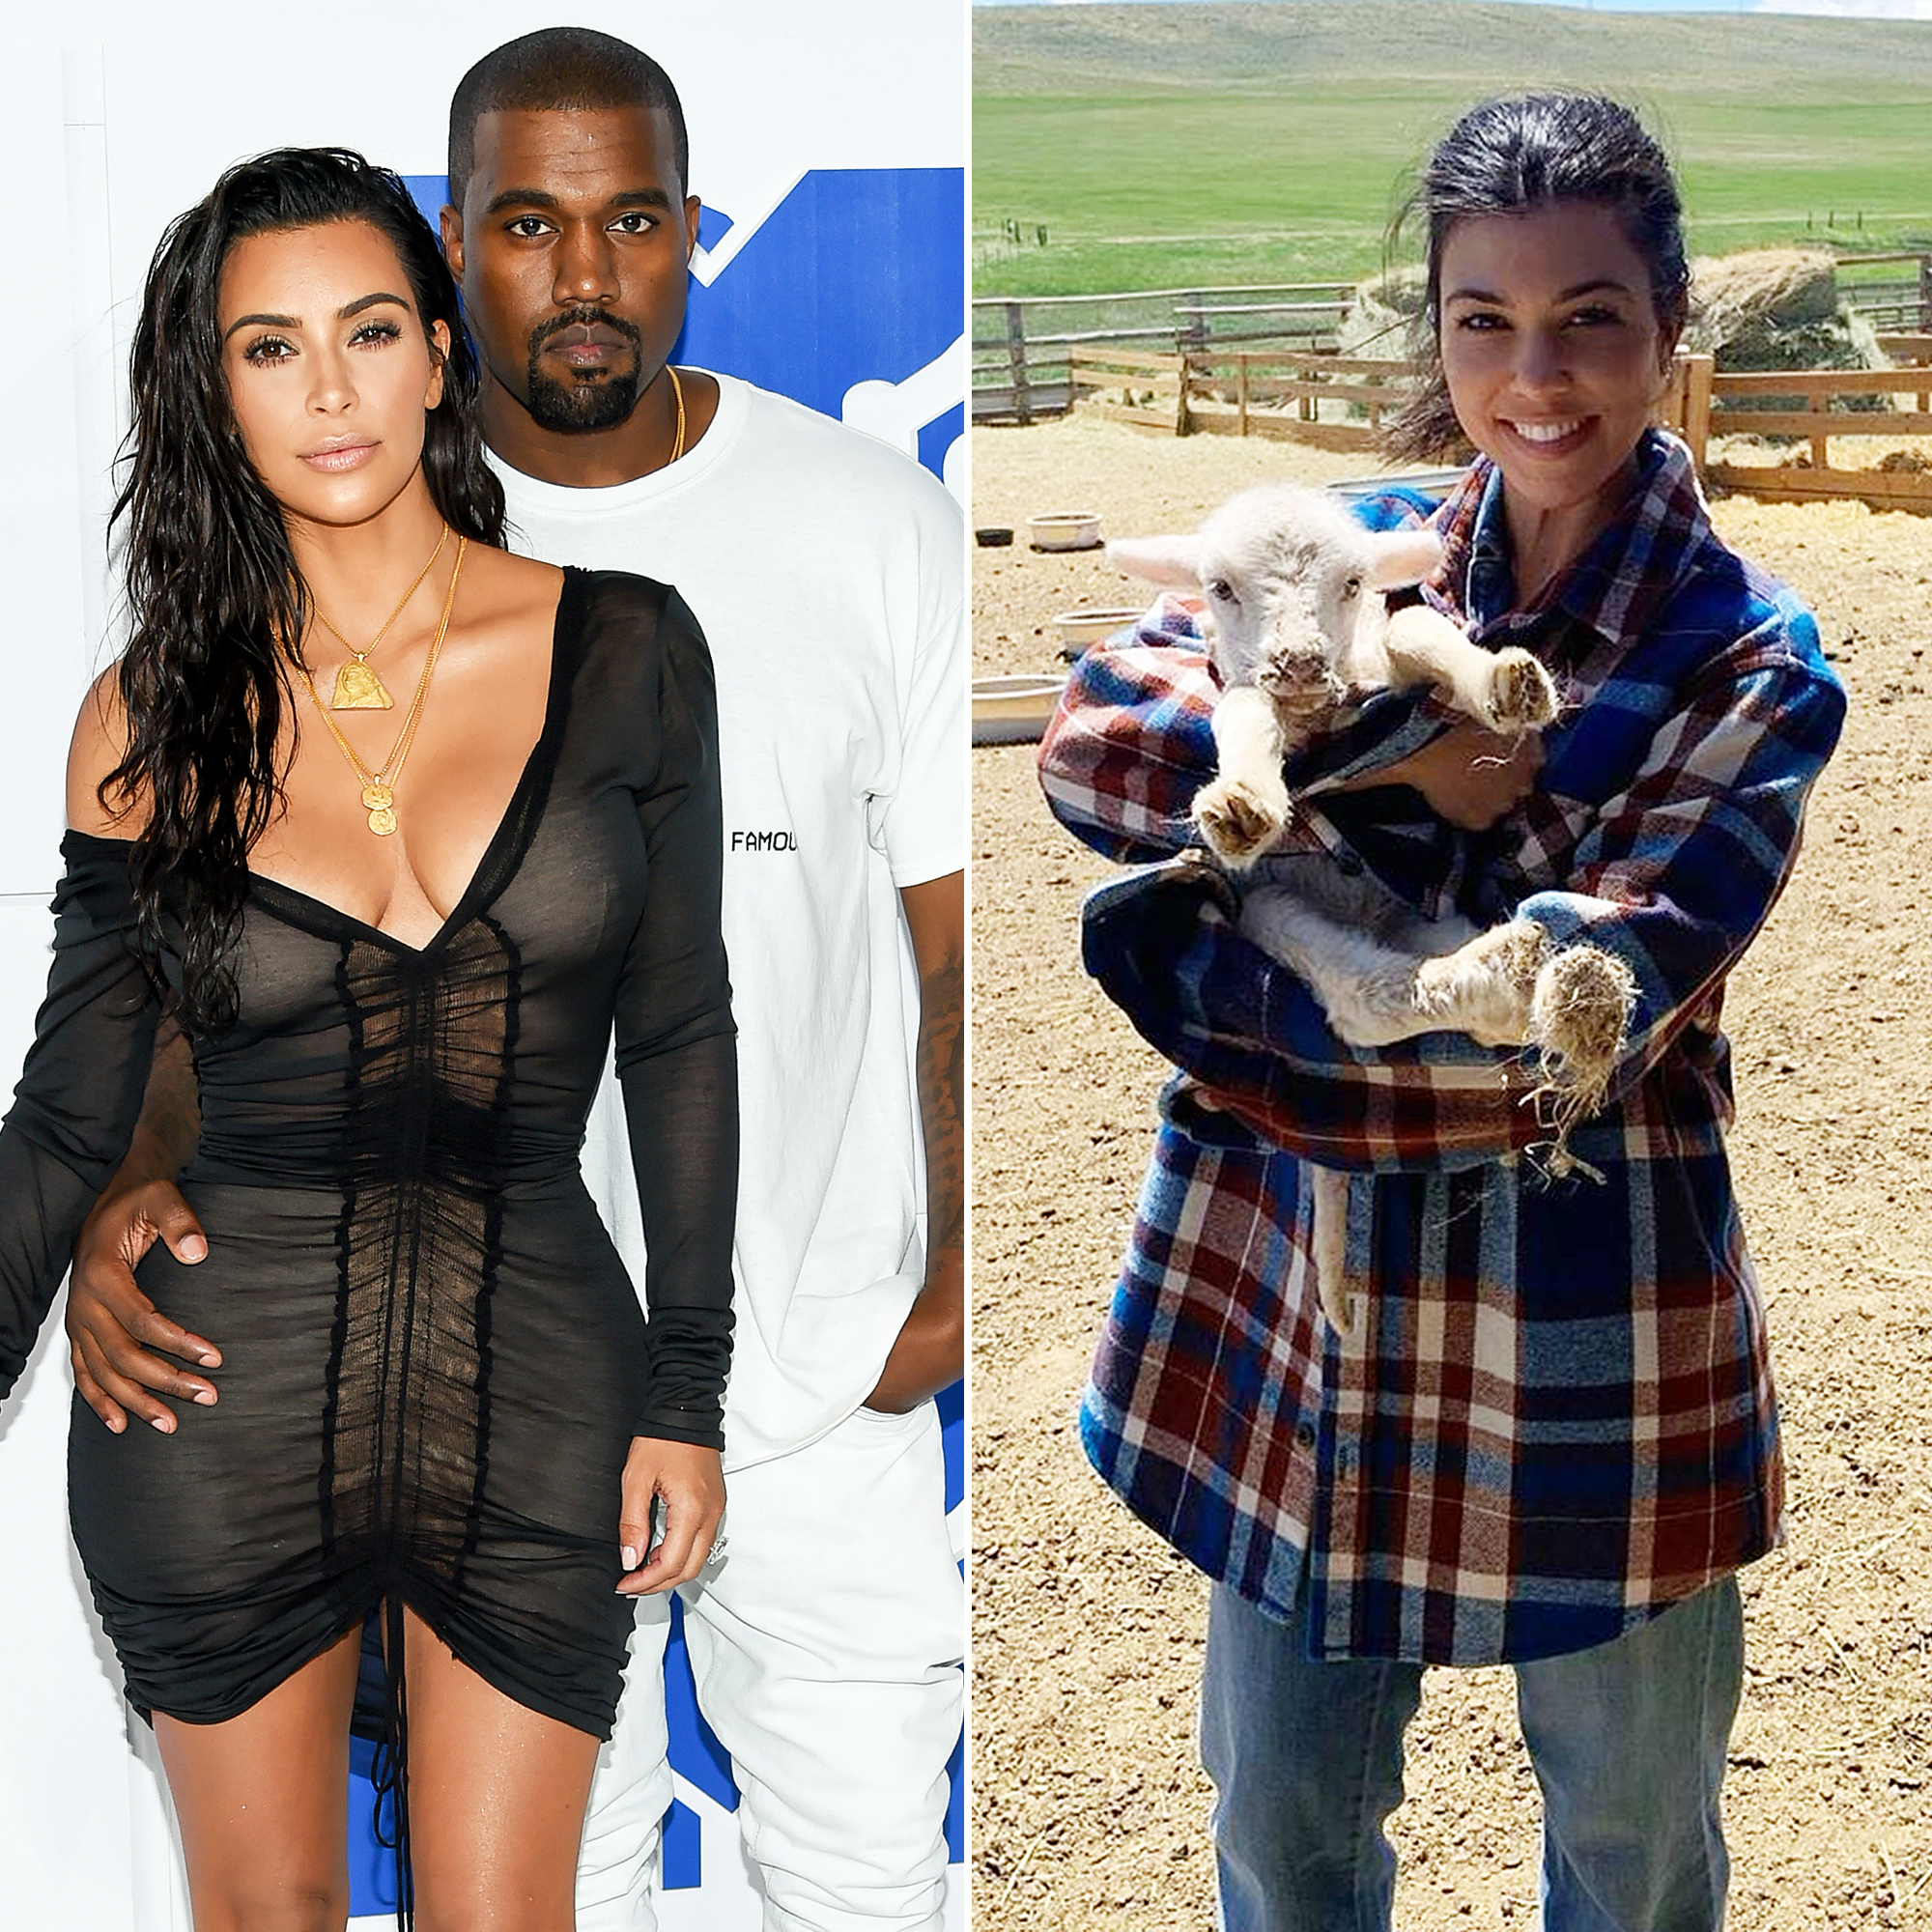 Kim Kardashian and Kanye West Are in Wyoming With Kourtney Kardashian and Extended Family